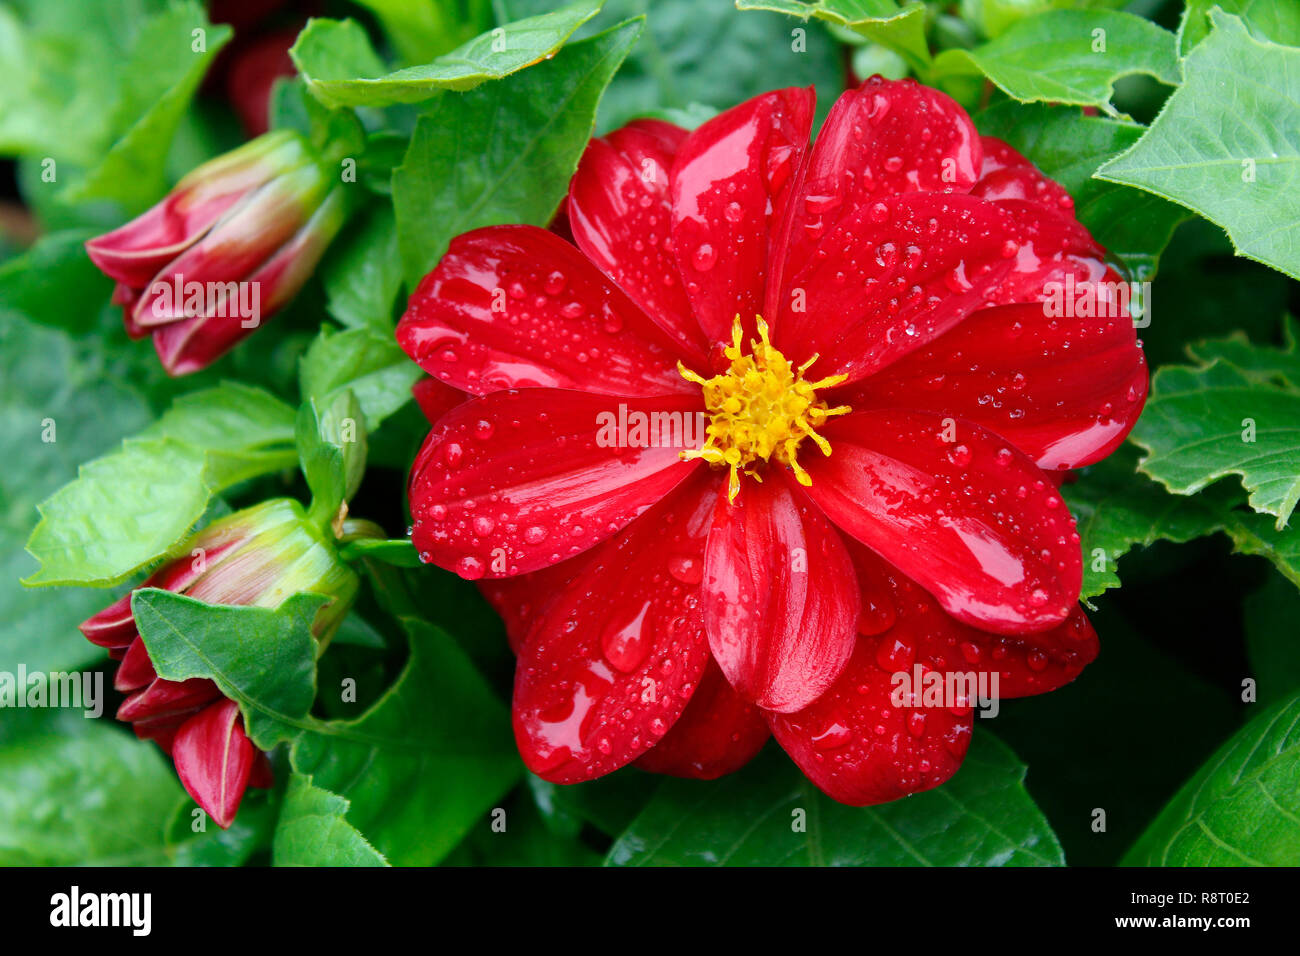 Rain on red flower - Stock Image